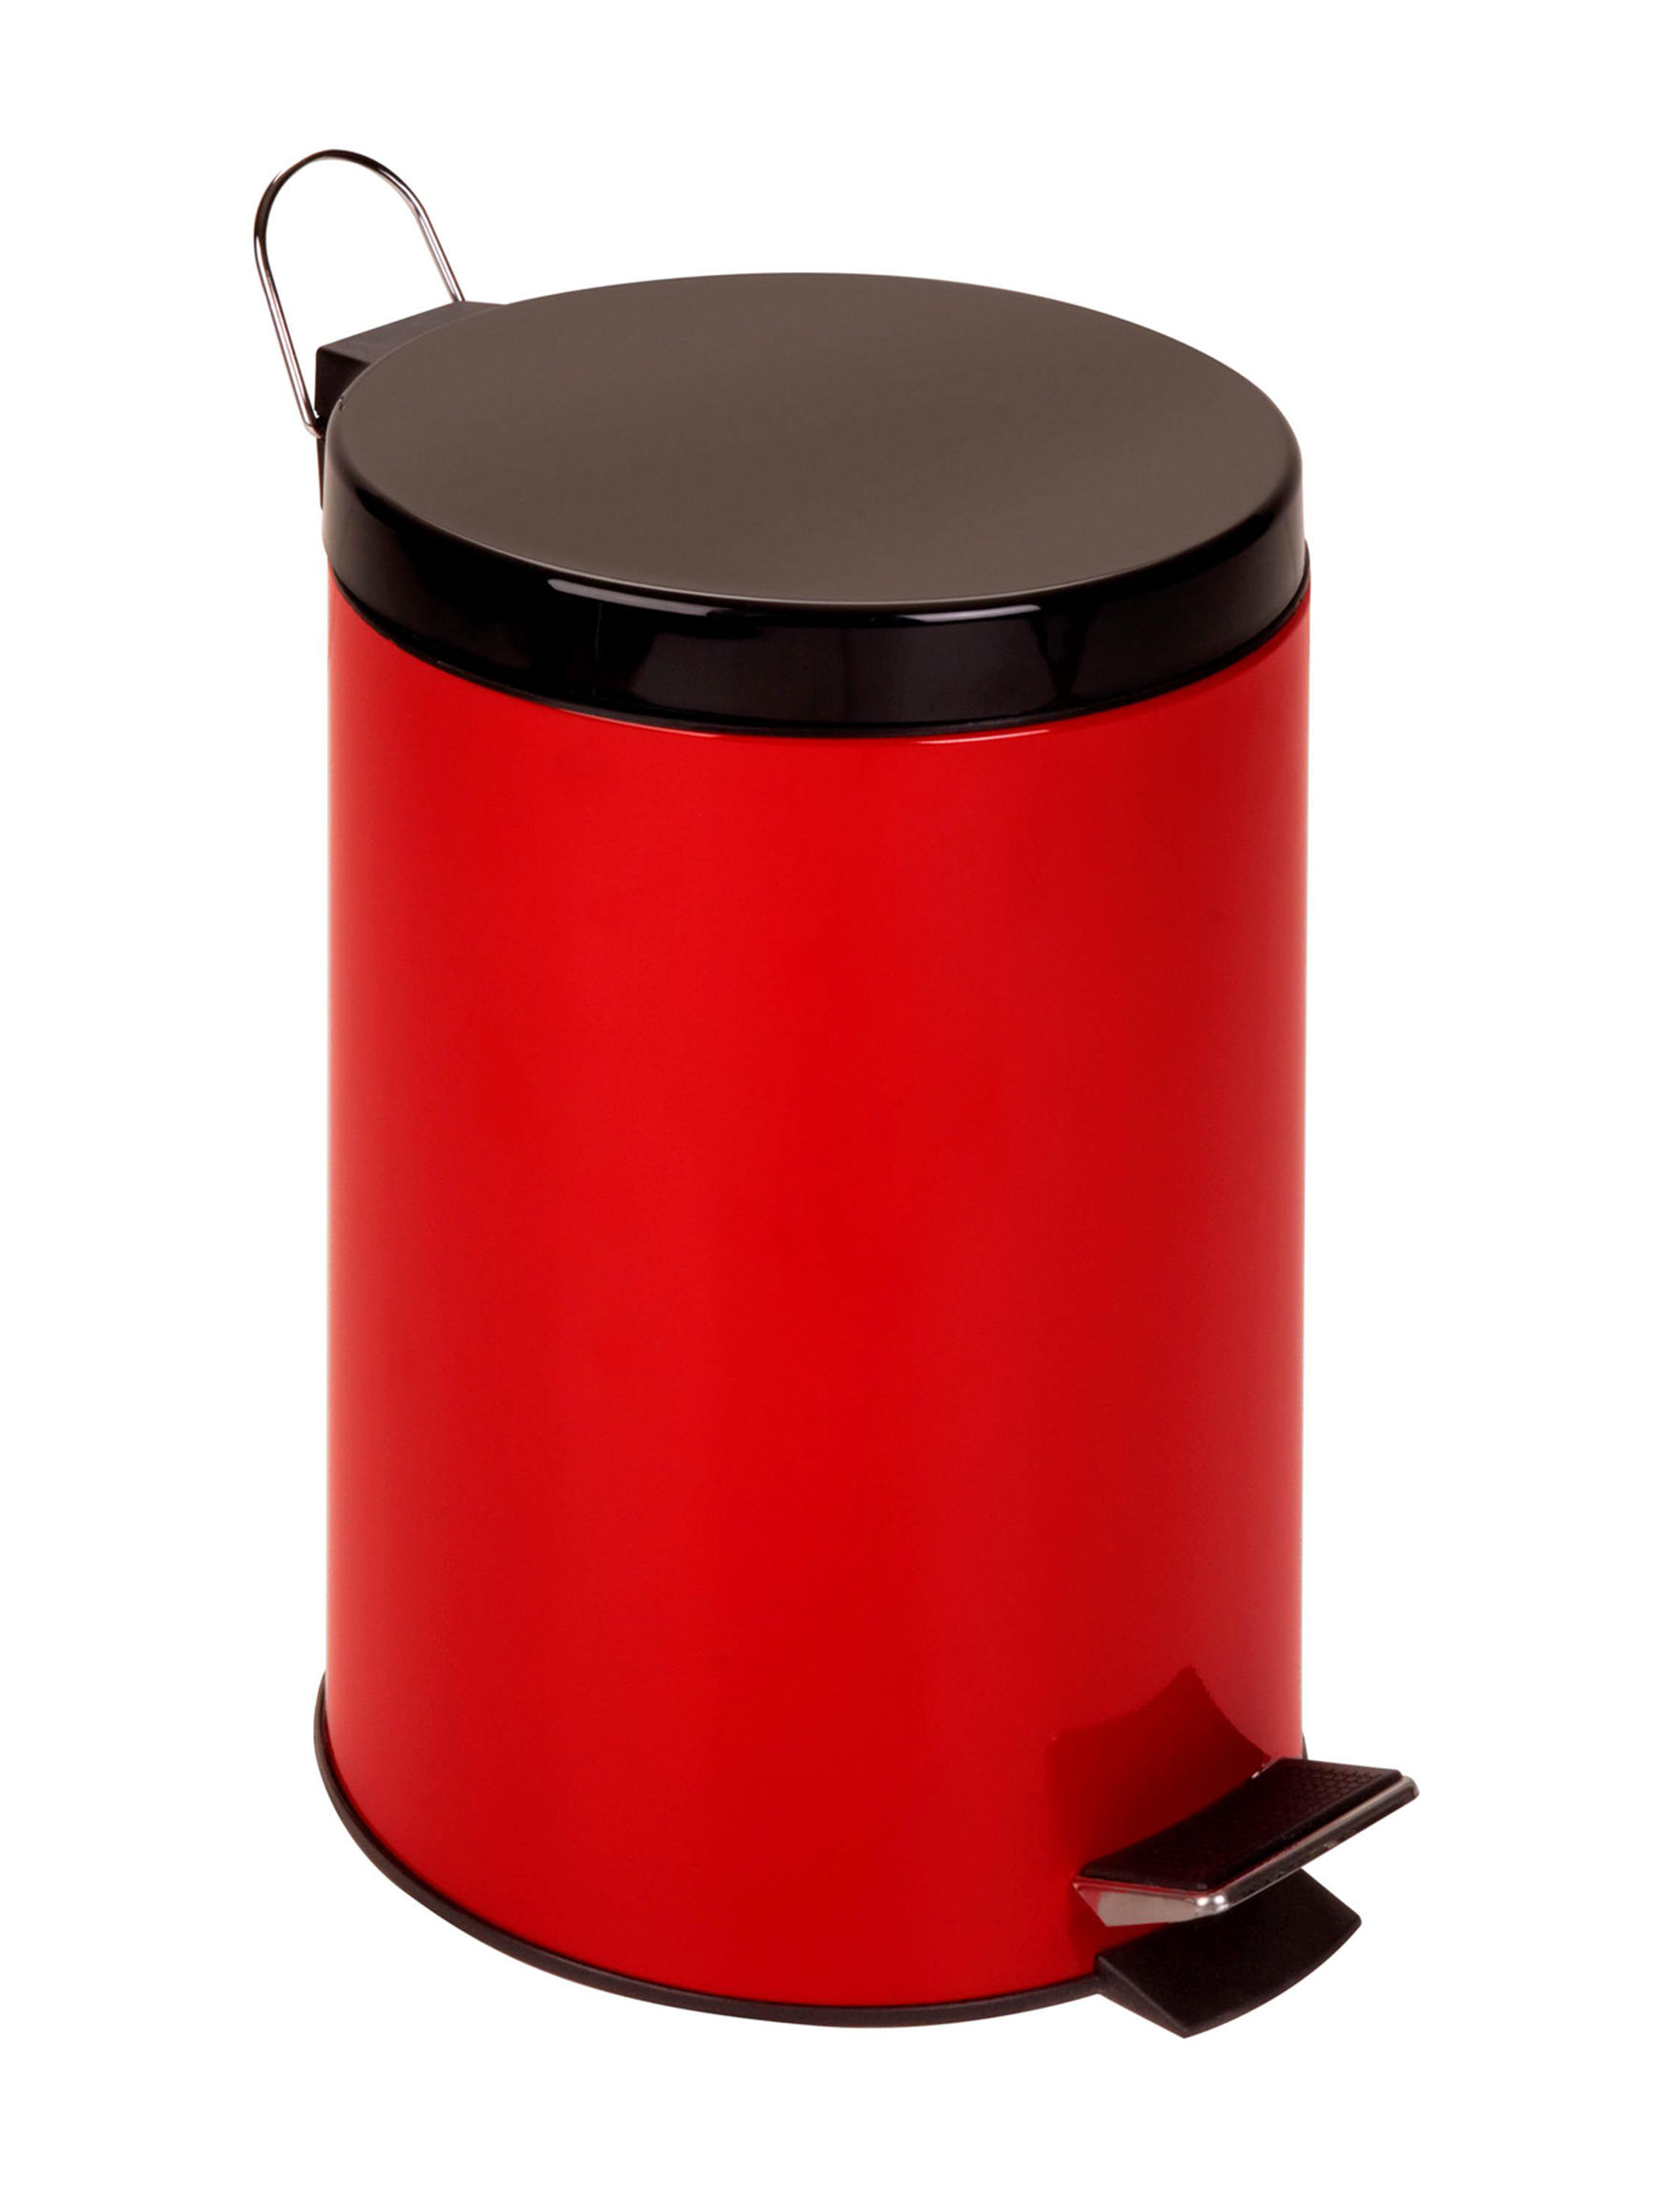 Honey-Can-Do International Ruby Trash & Recycling Bins Storage & Organization